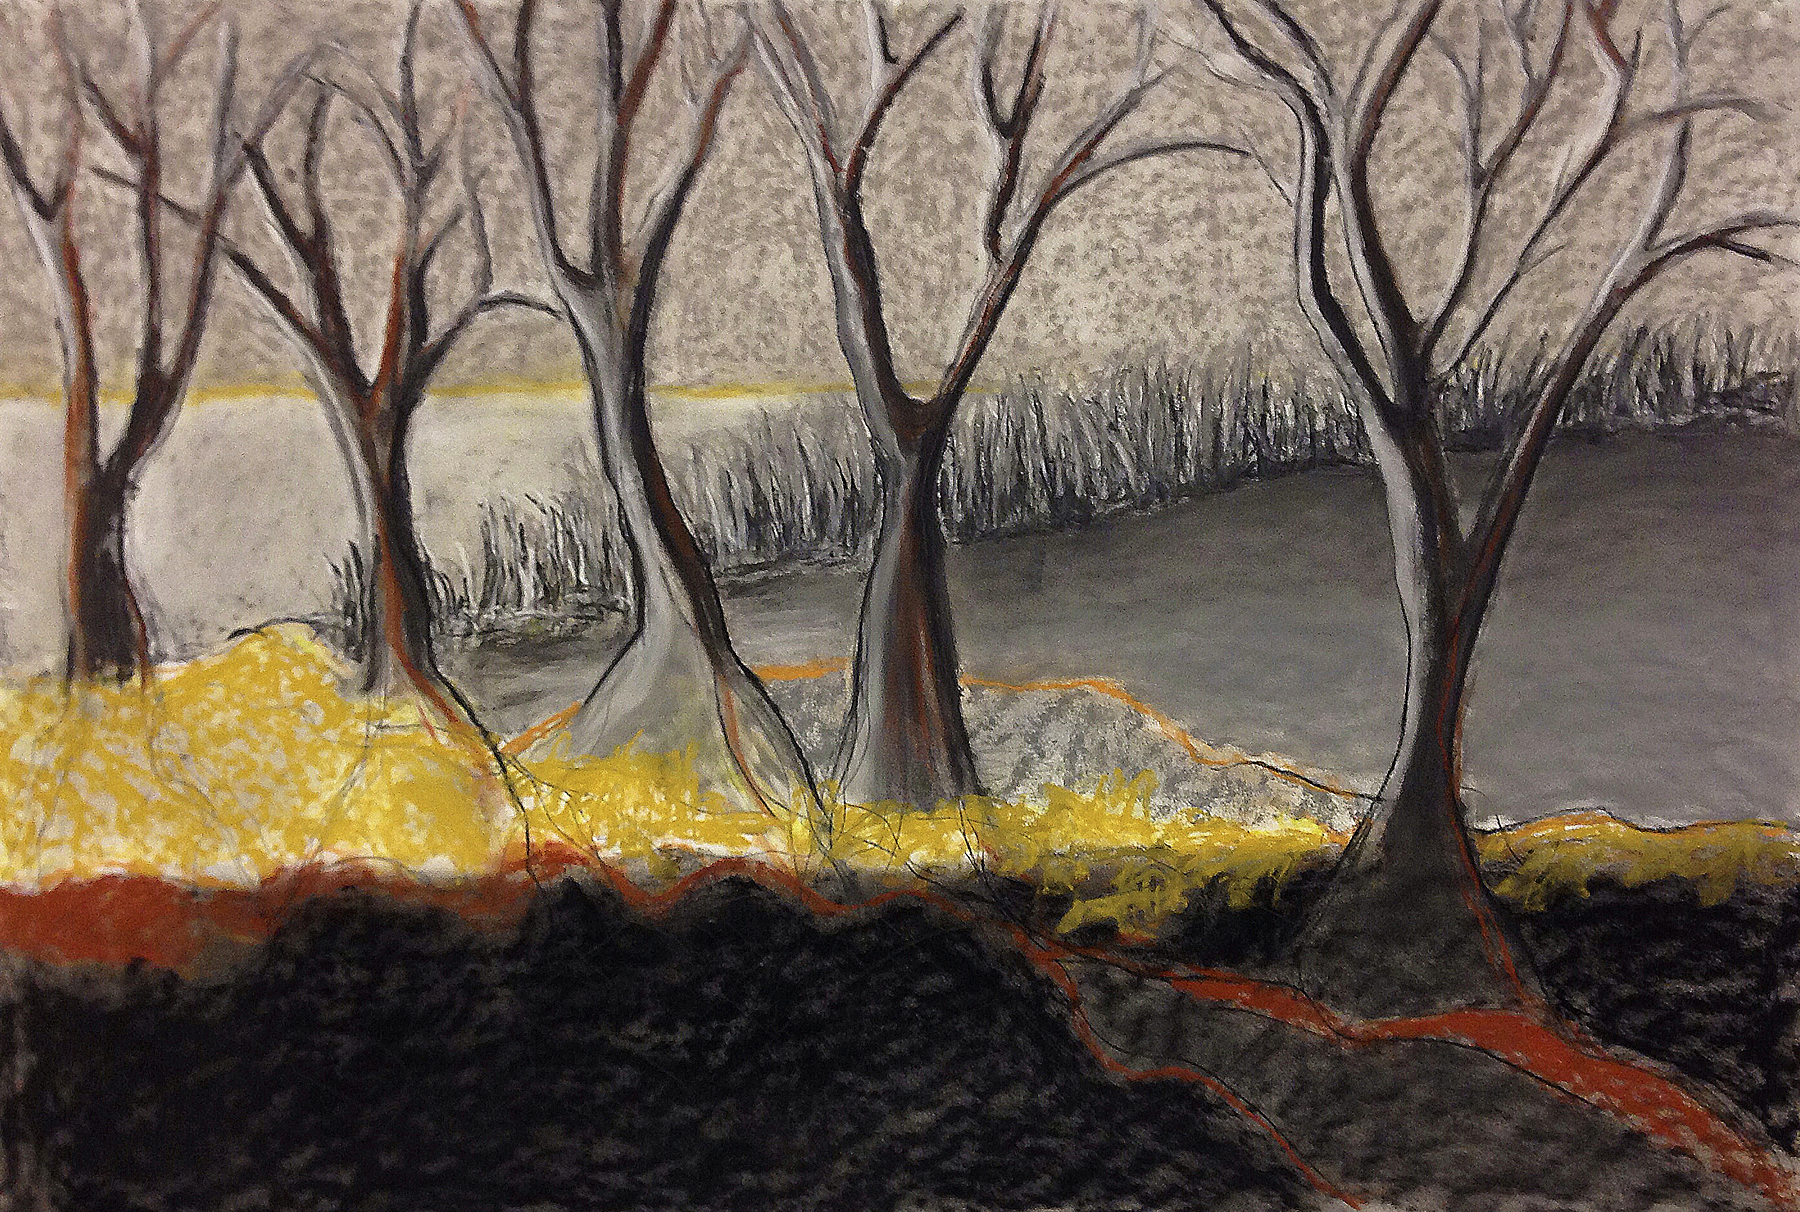 Scout K. Austin  and Kellie Weeks,  Untitled No. 14,   pastel and charcoal, 44 x 30 in., $600.00